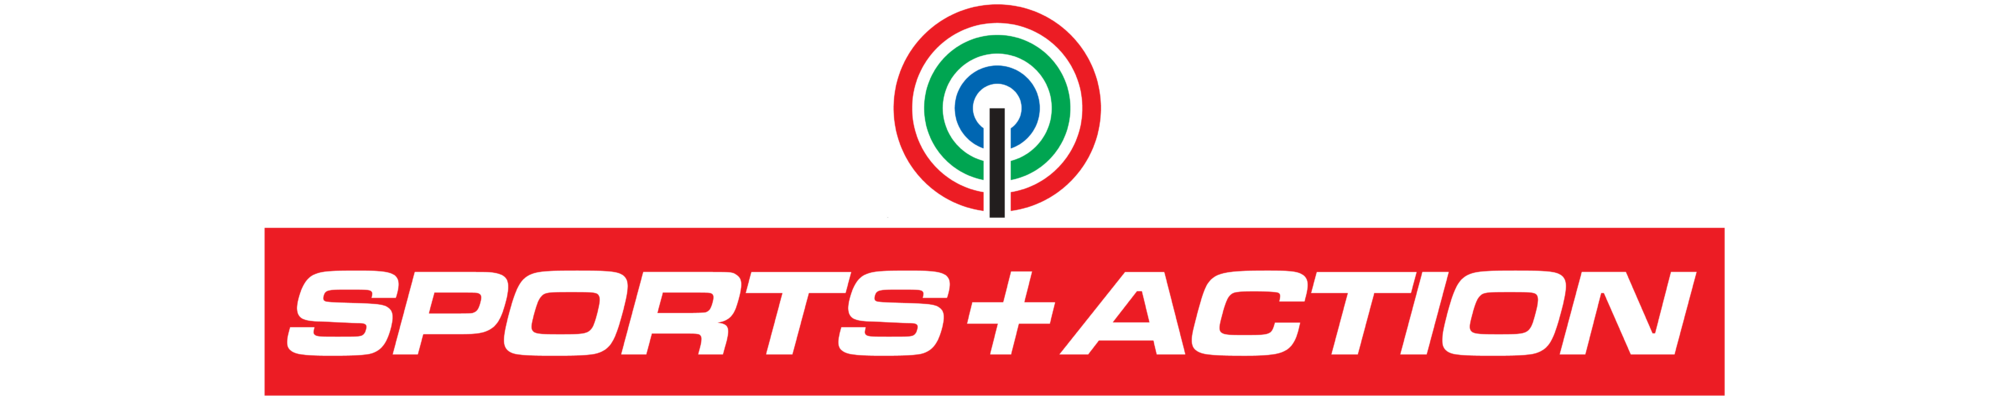 ABS CBN Sports And Action White Logo.png